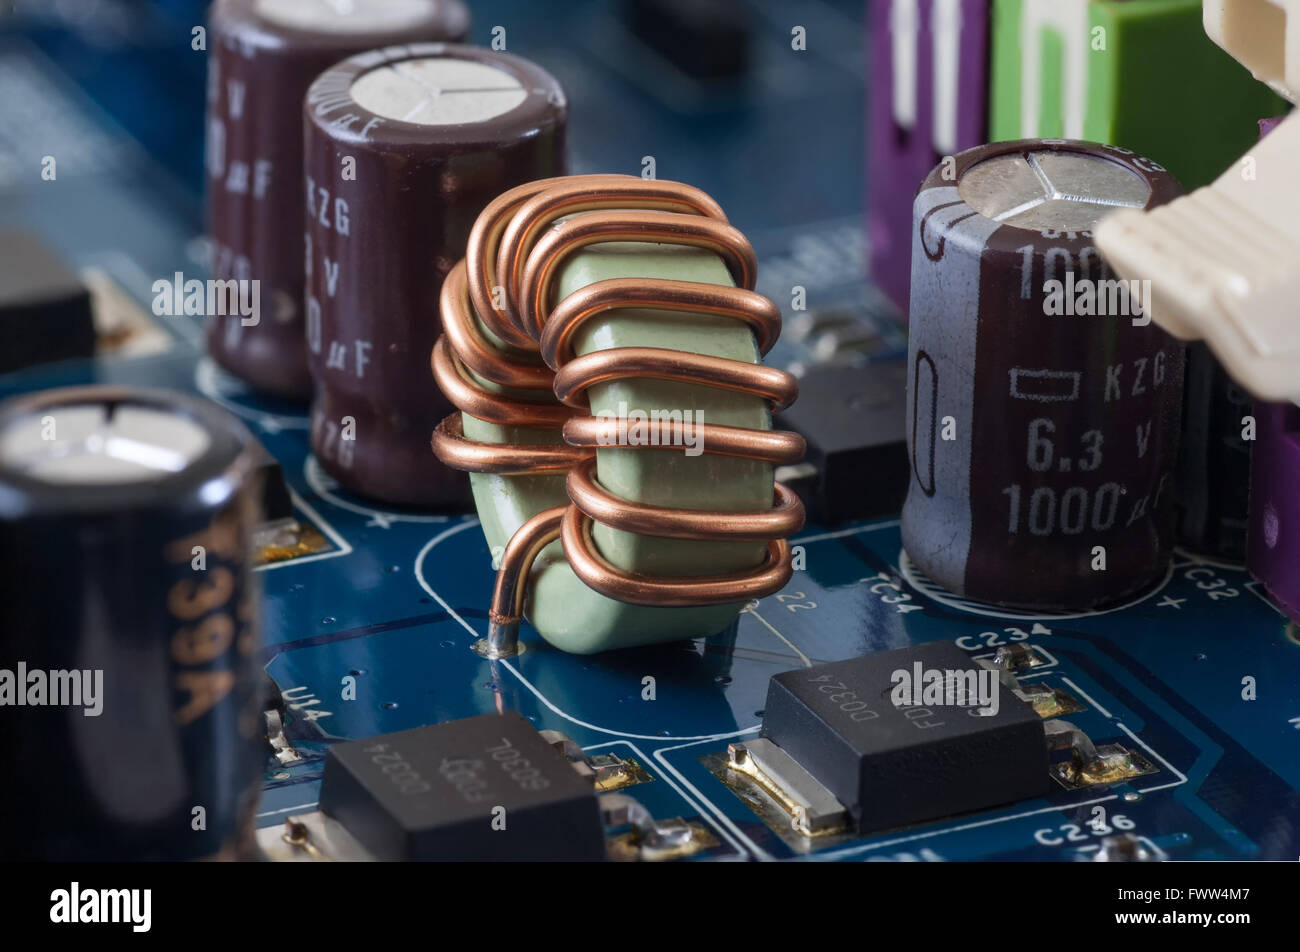 motherboard, computer electronics - dimmer, closeup and macro - Stock Image